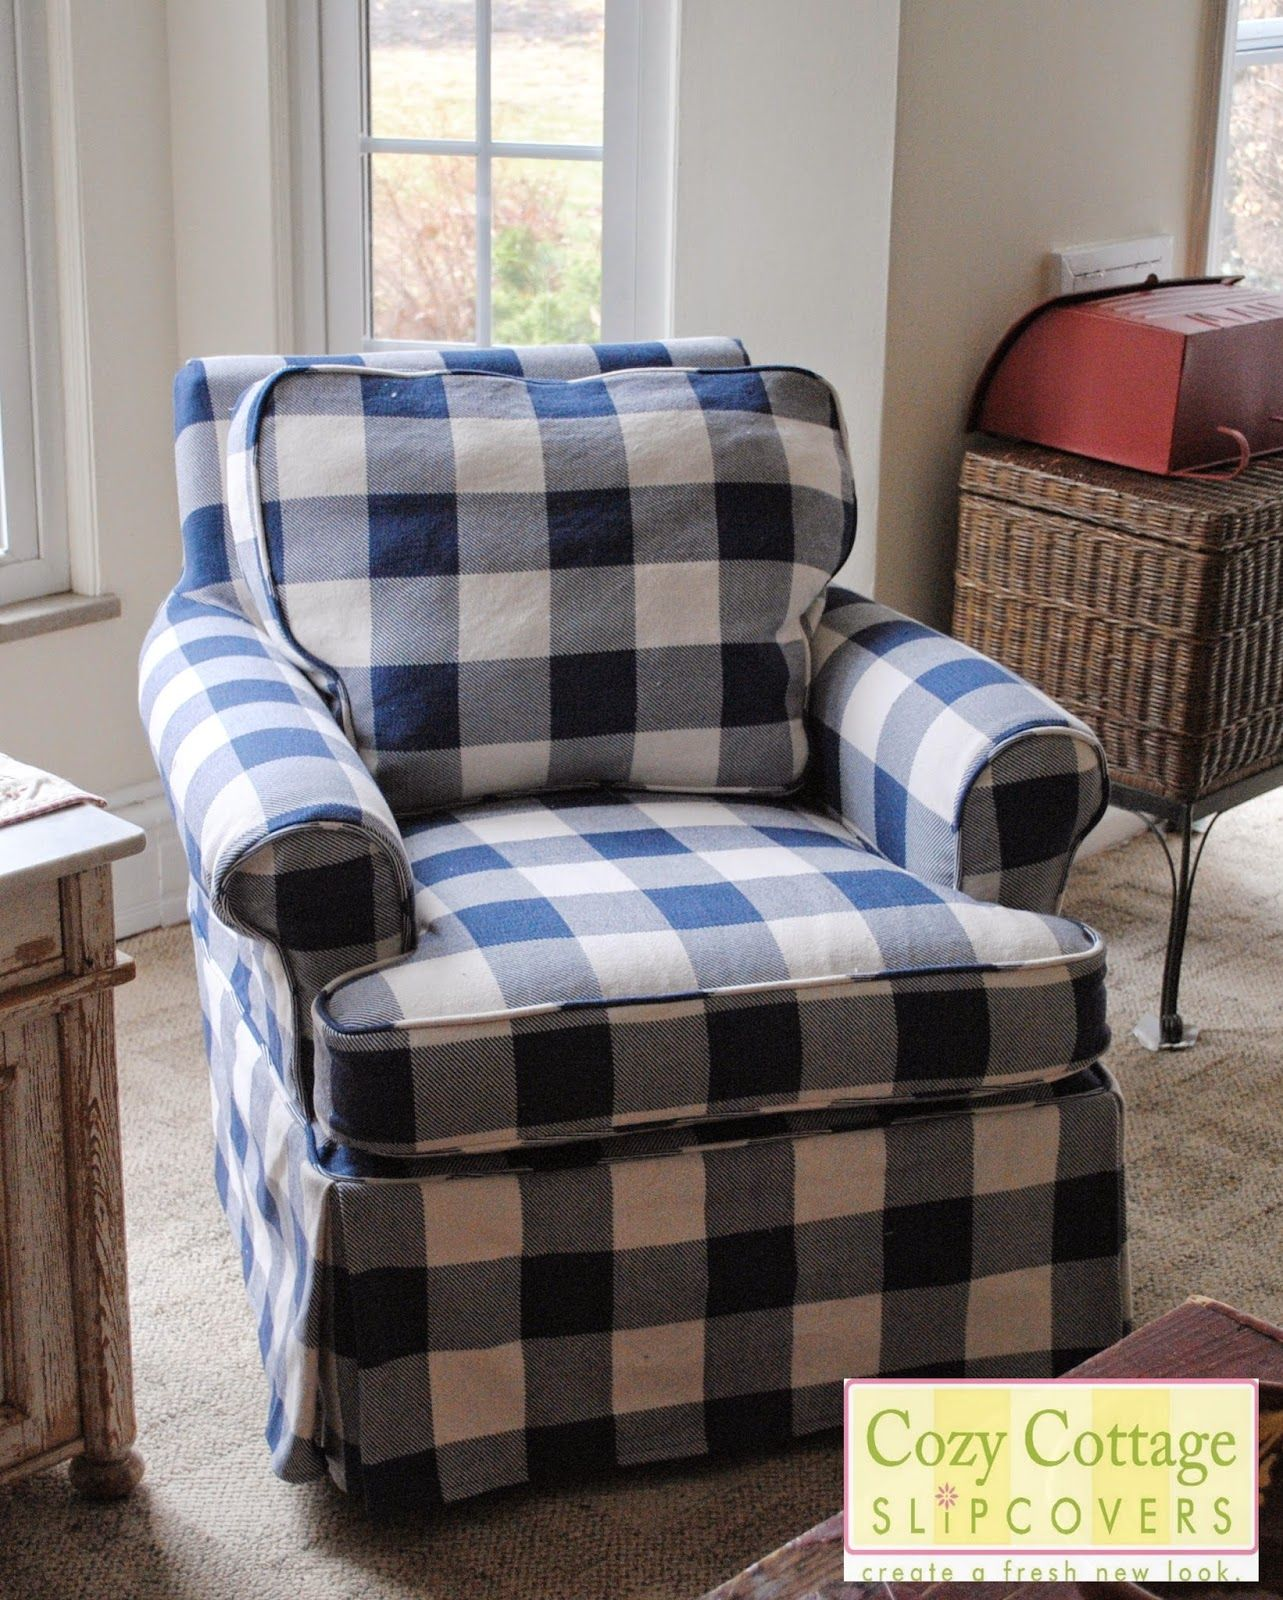 Blue And White Buffalo Check Slipcovers Slipcovers For Chairs